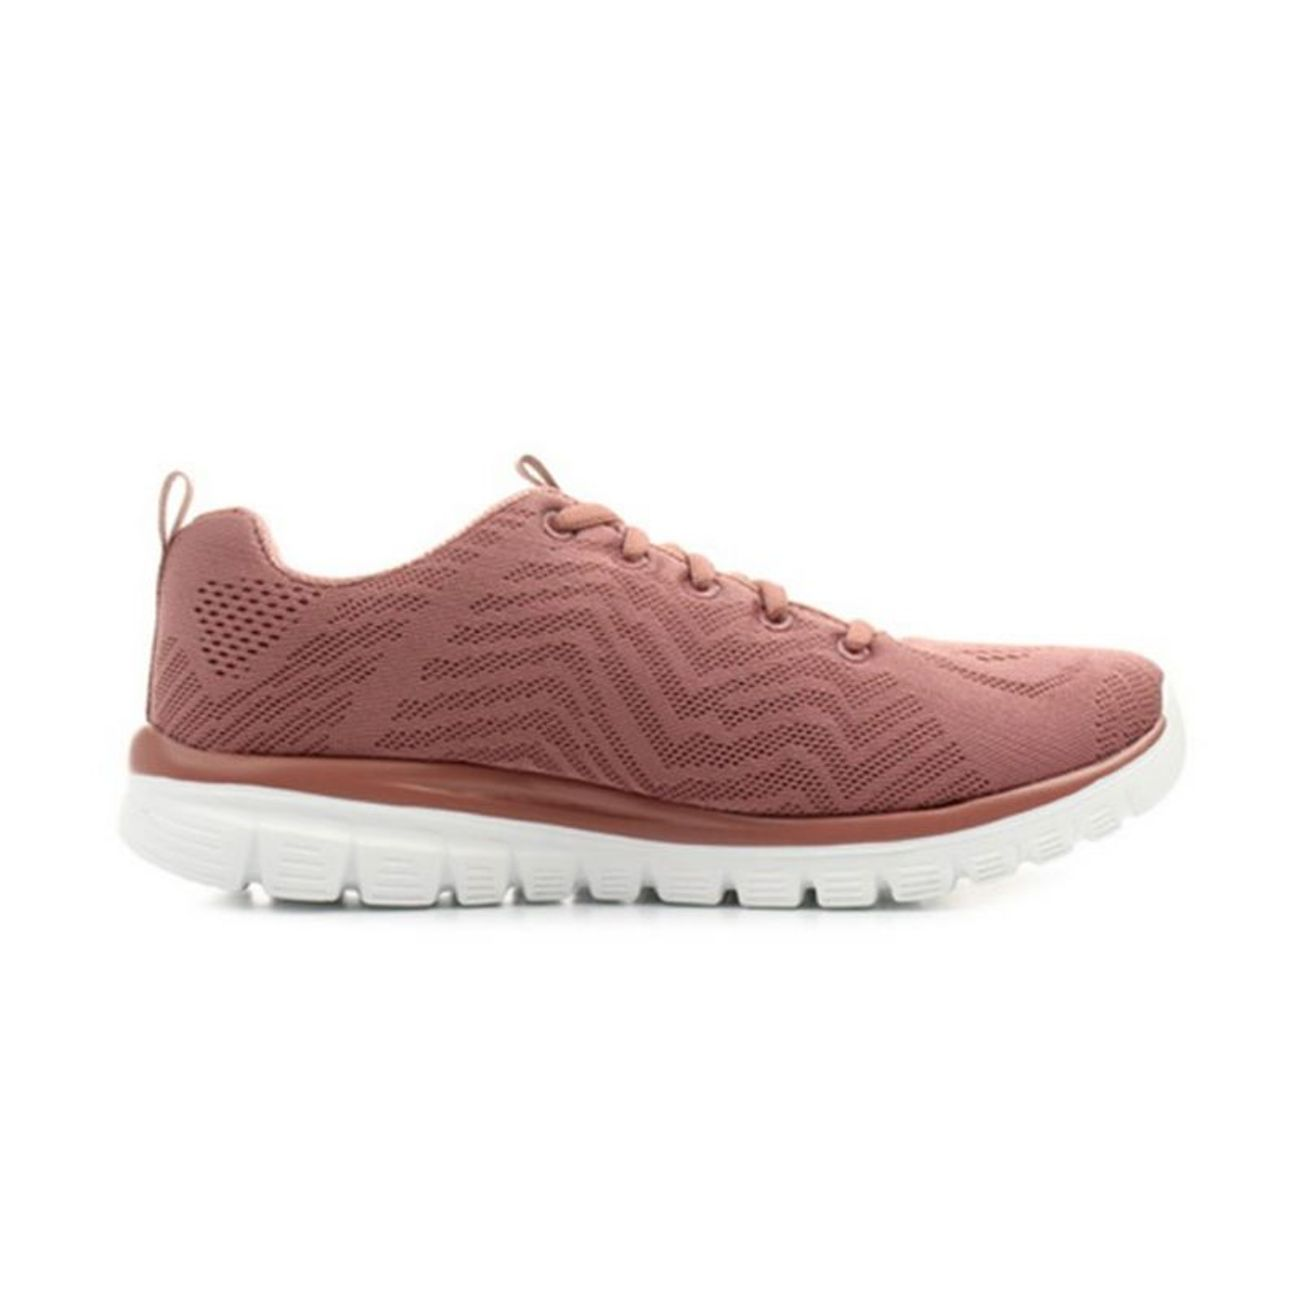 Skechers Mujer Connected Graceful Adulte Rosa Padel Get ul1Kc5TJF3